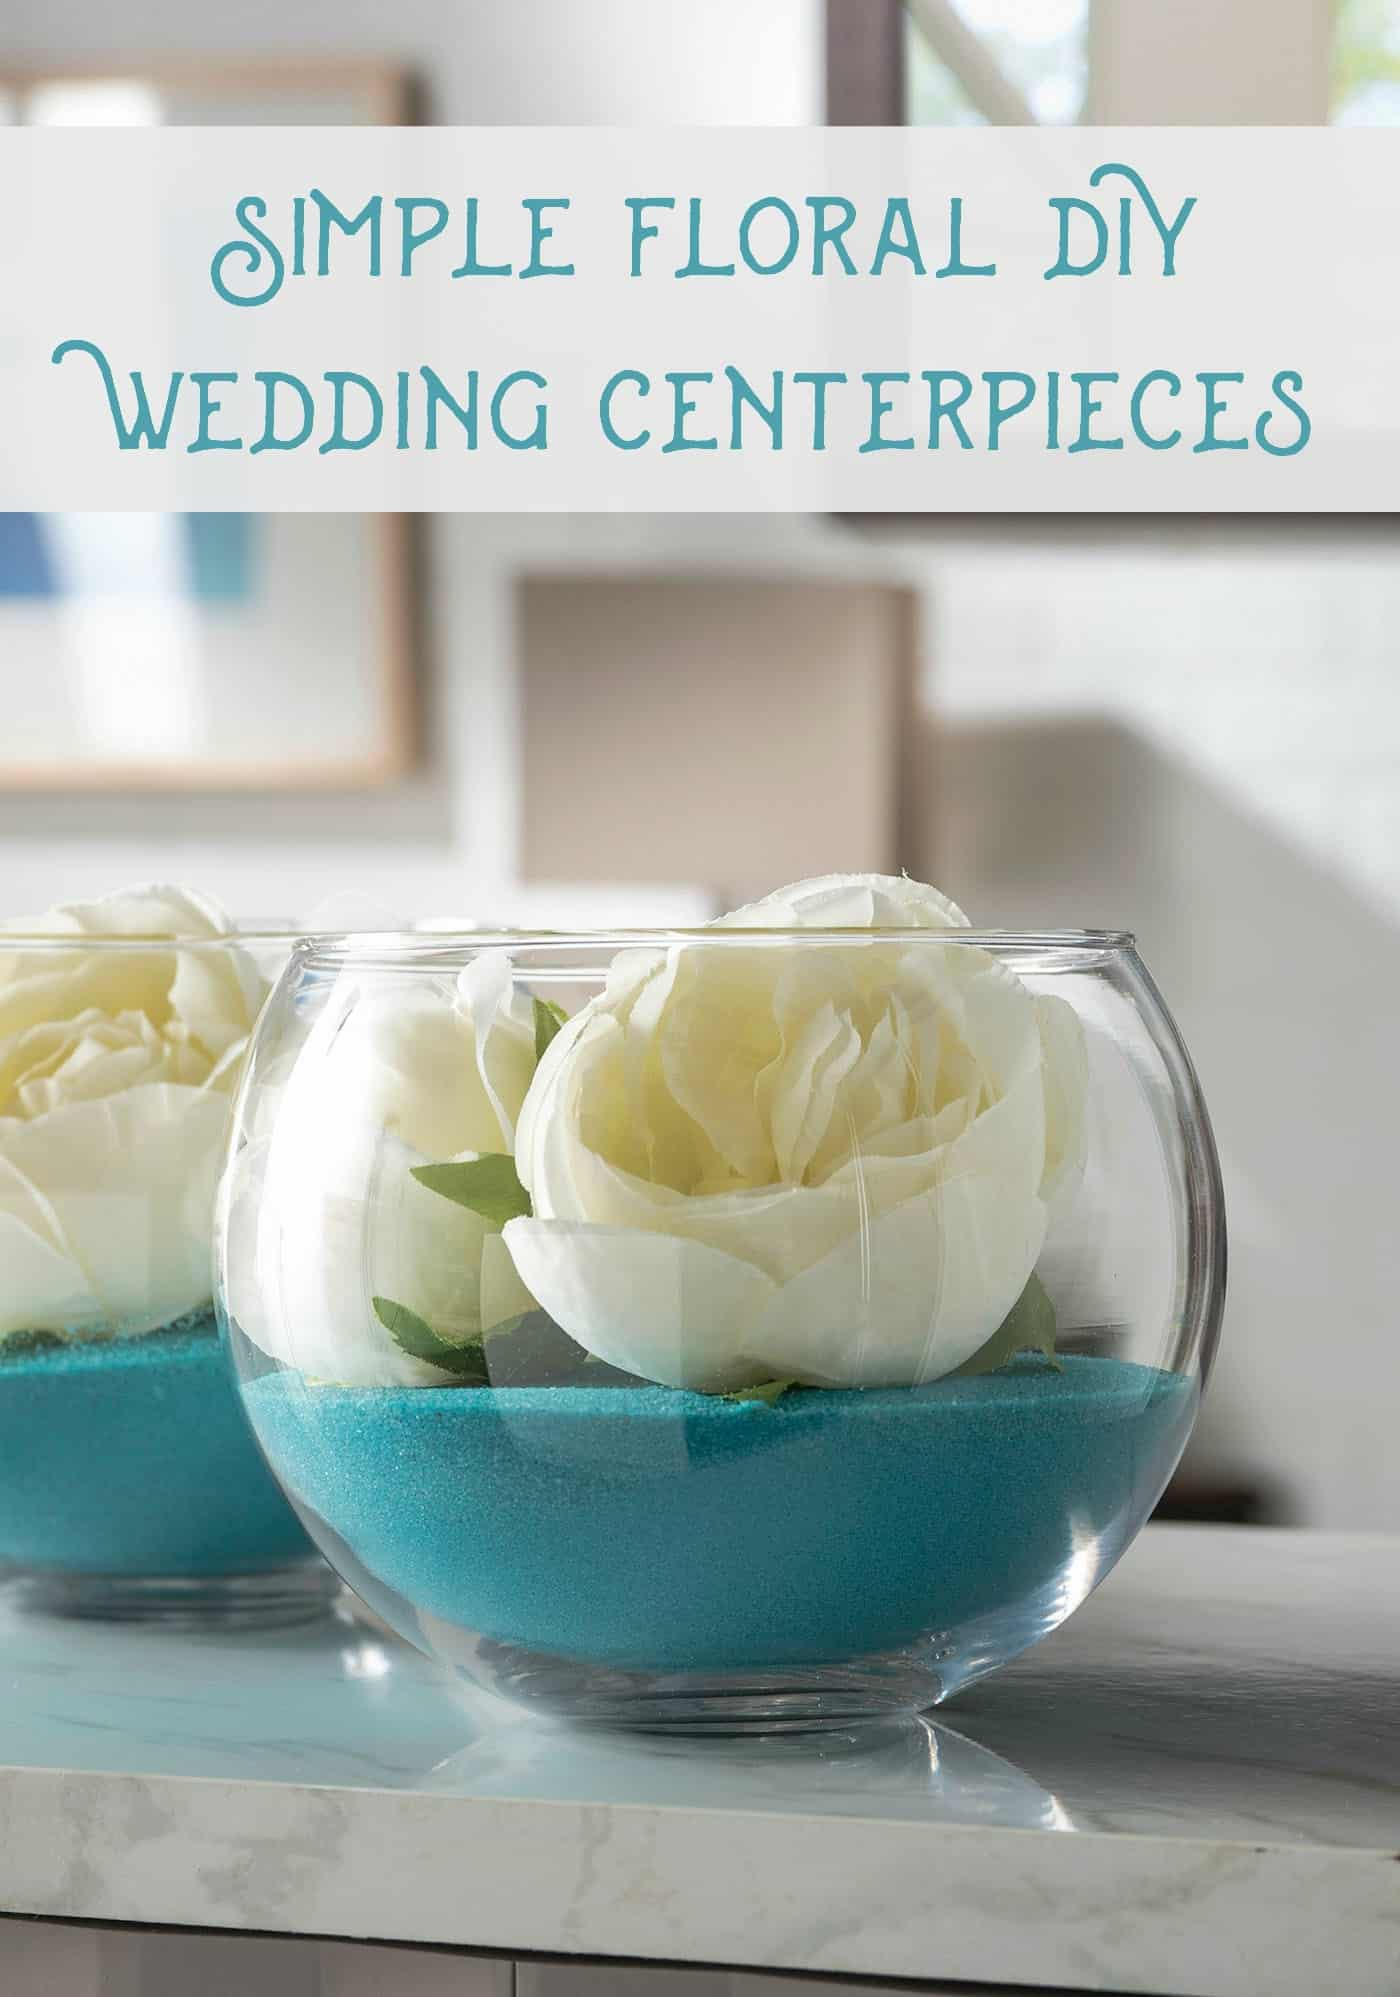 Diy Wedding Centerpieces That Assemble In Minutes Diy Candy